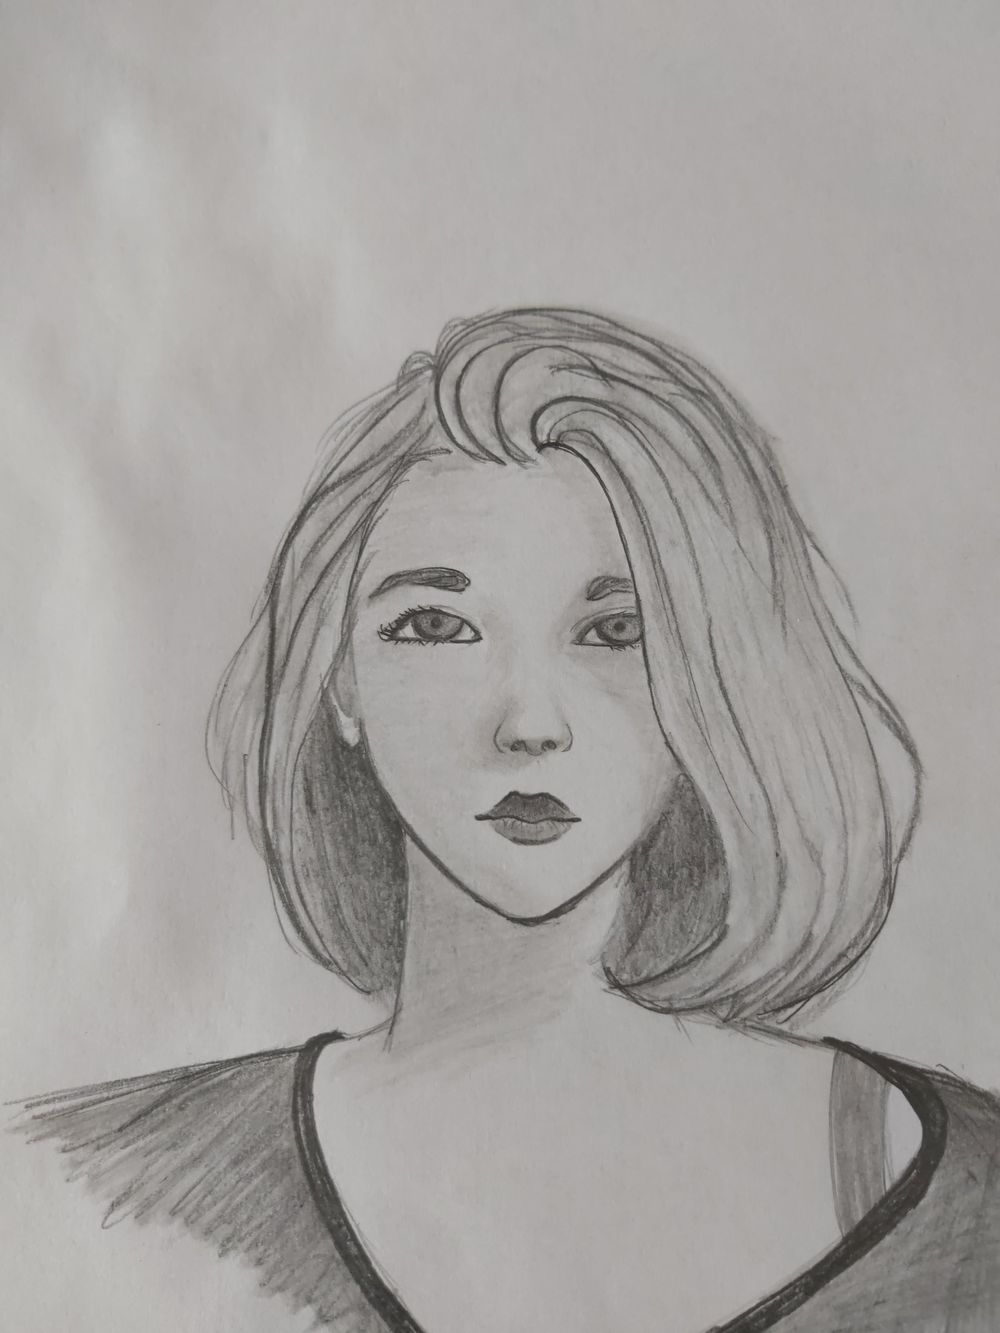 Female character practice - image 2 - student project